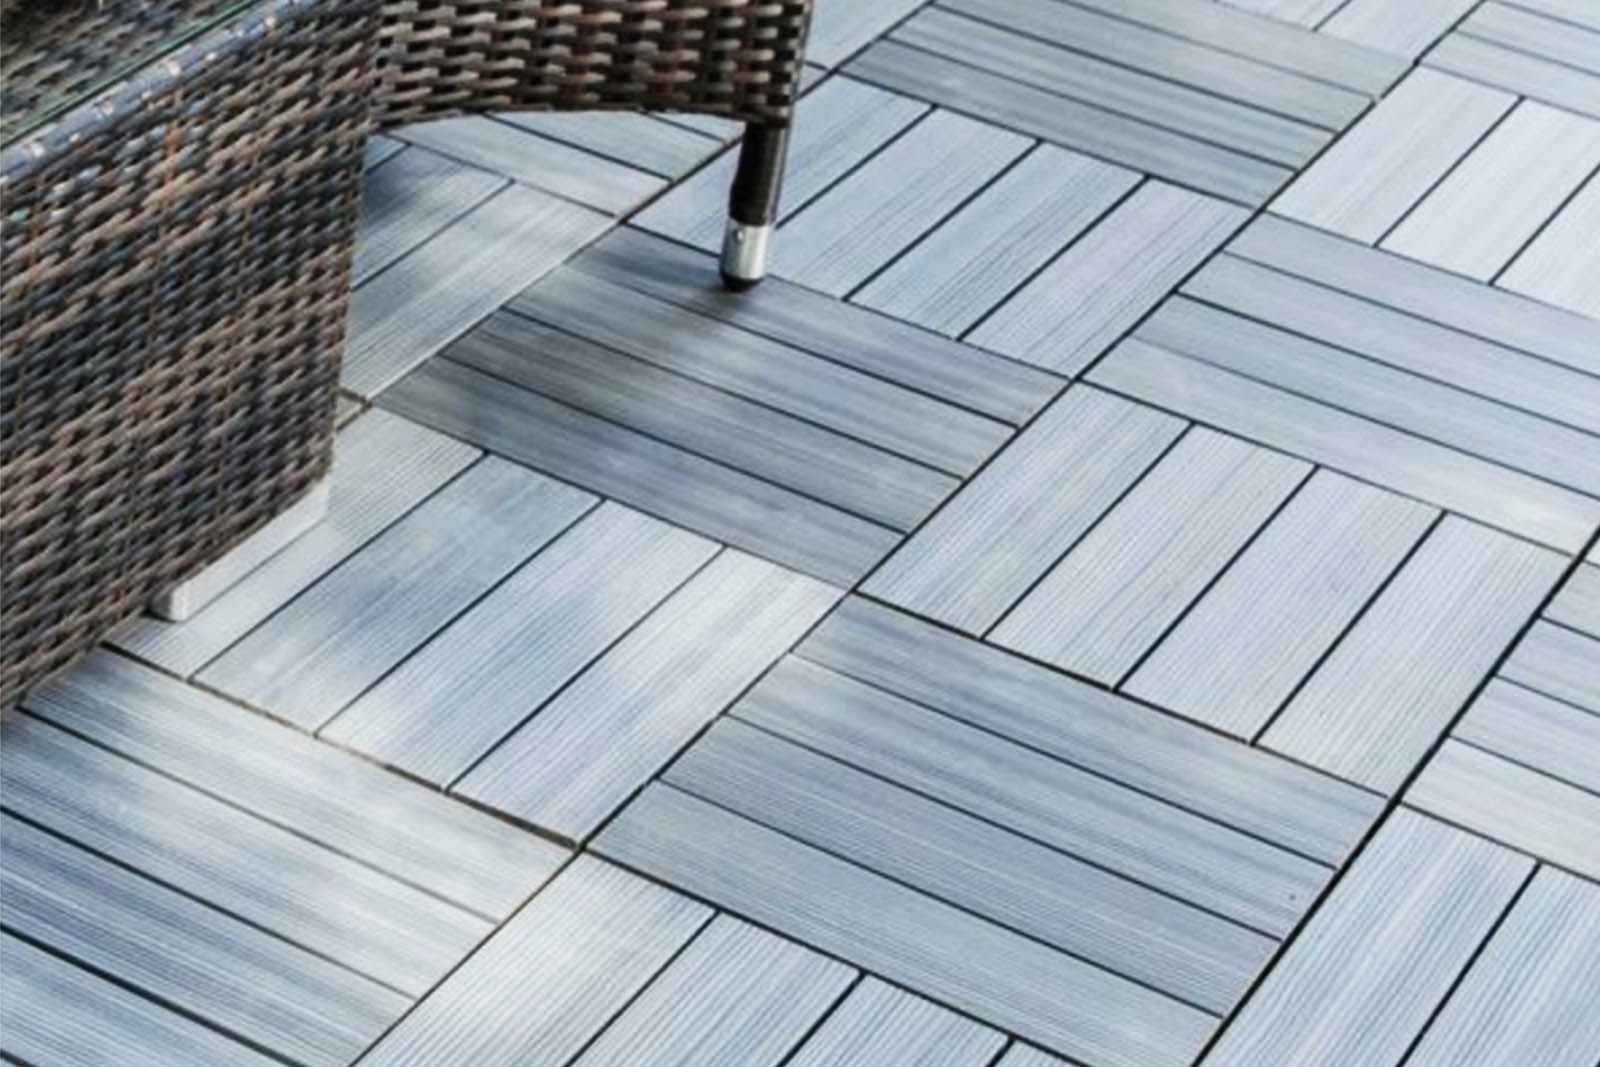 ... aspects of outdoor flooring ... MWQVVUR